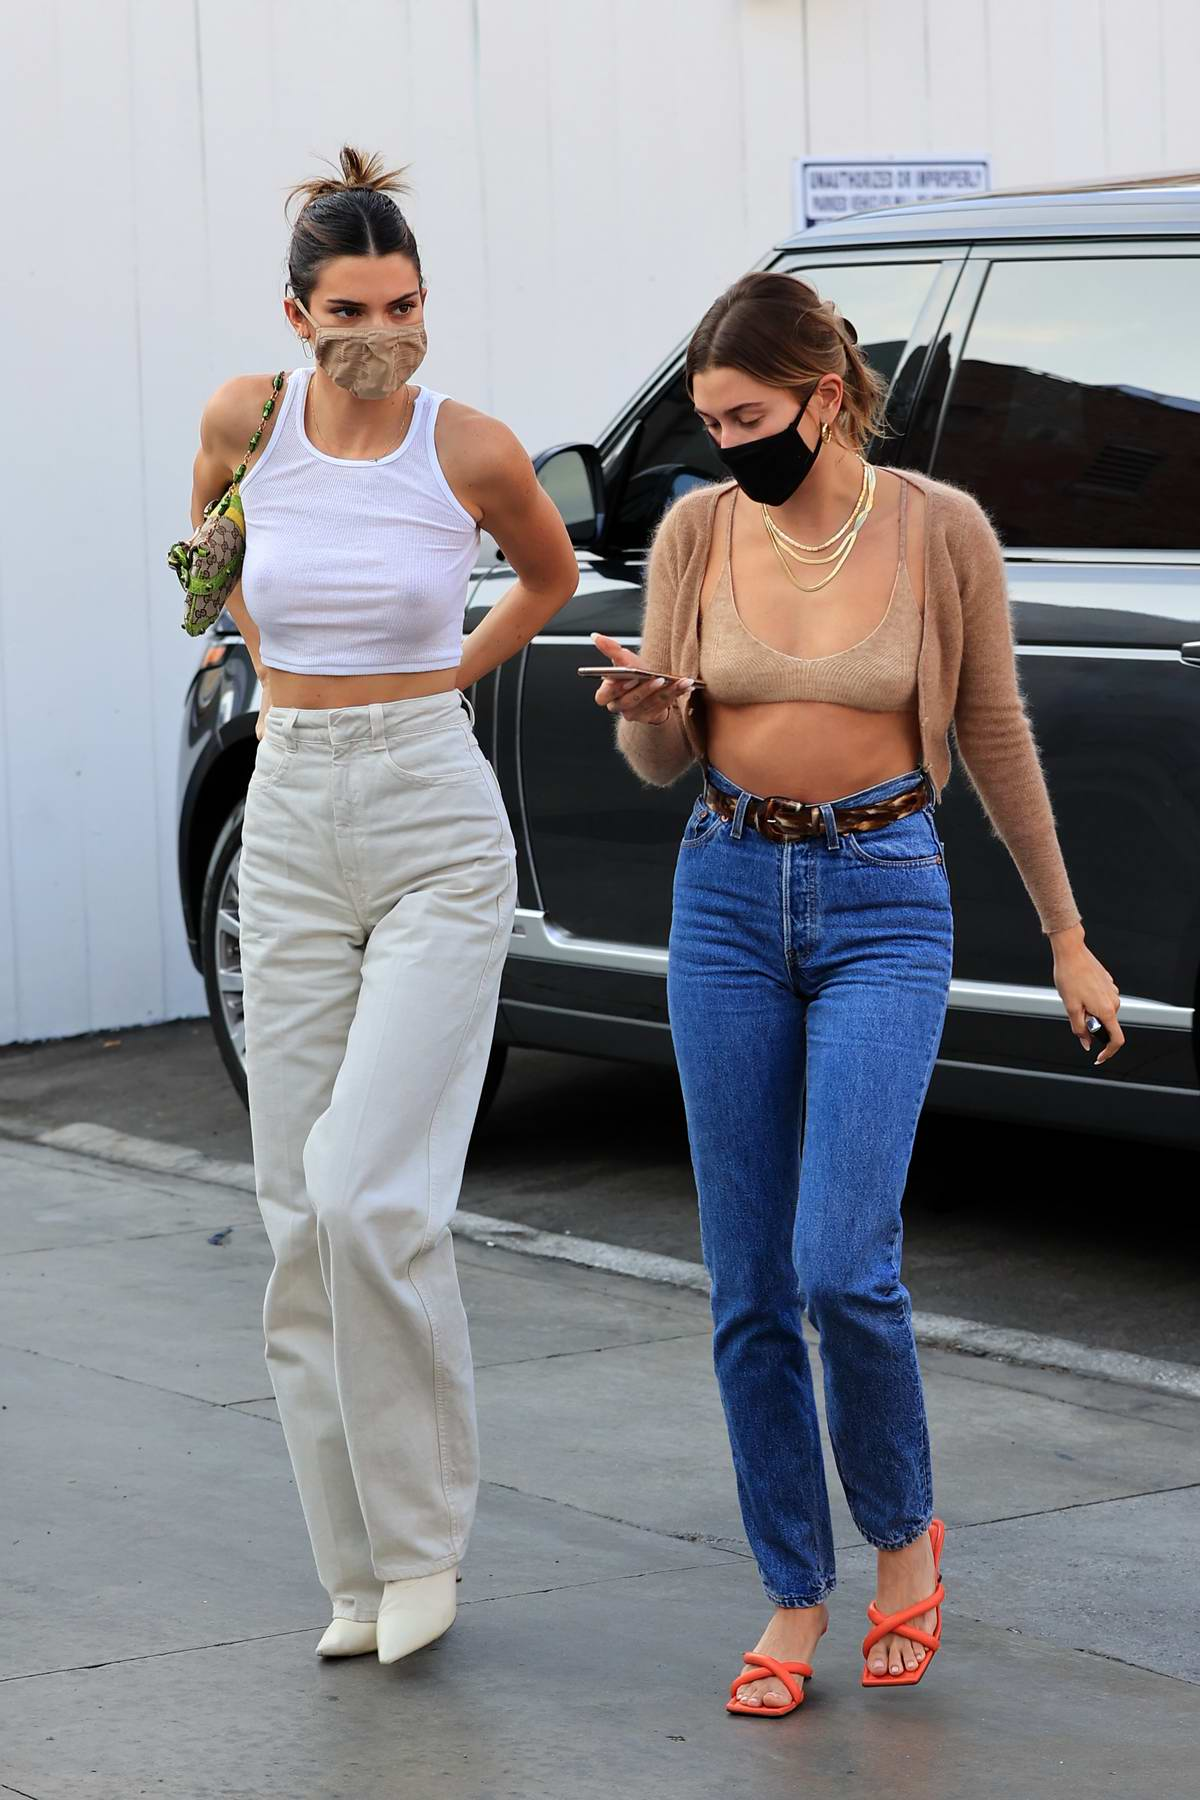 Kendall Jenner and Hailey Bieber enjoy a shopping trip together in Los Angeles